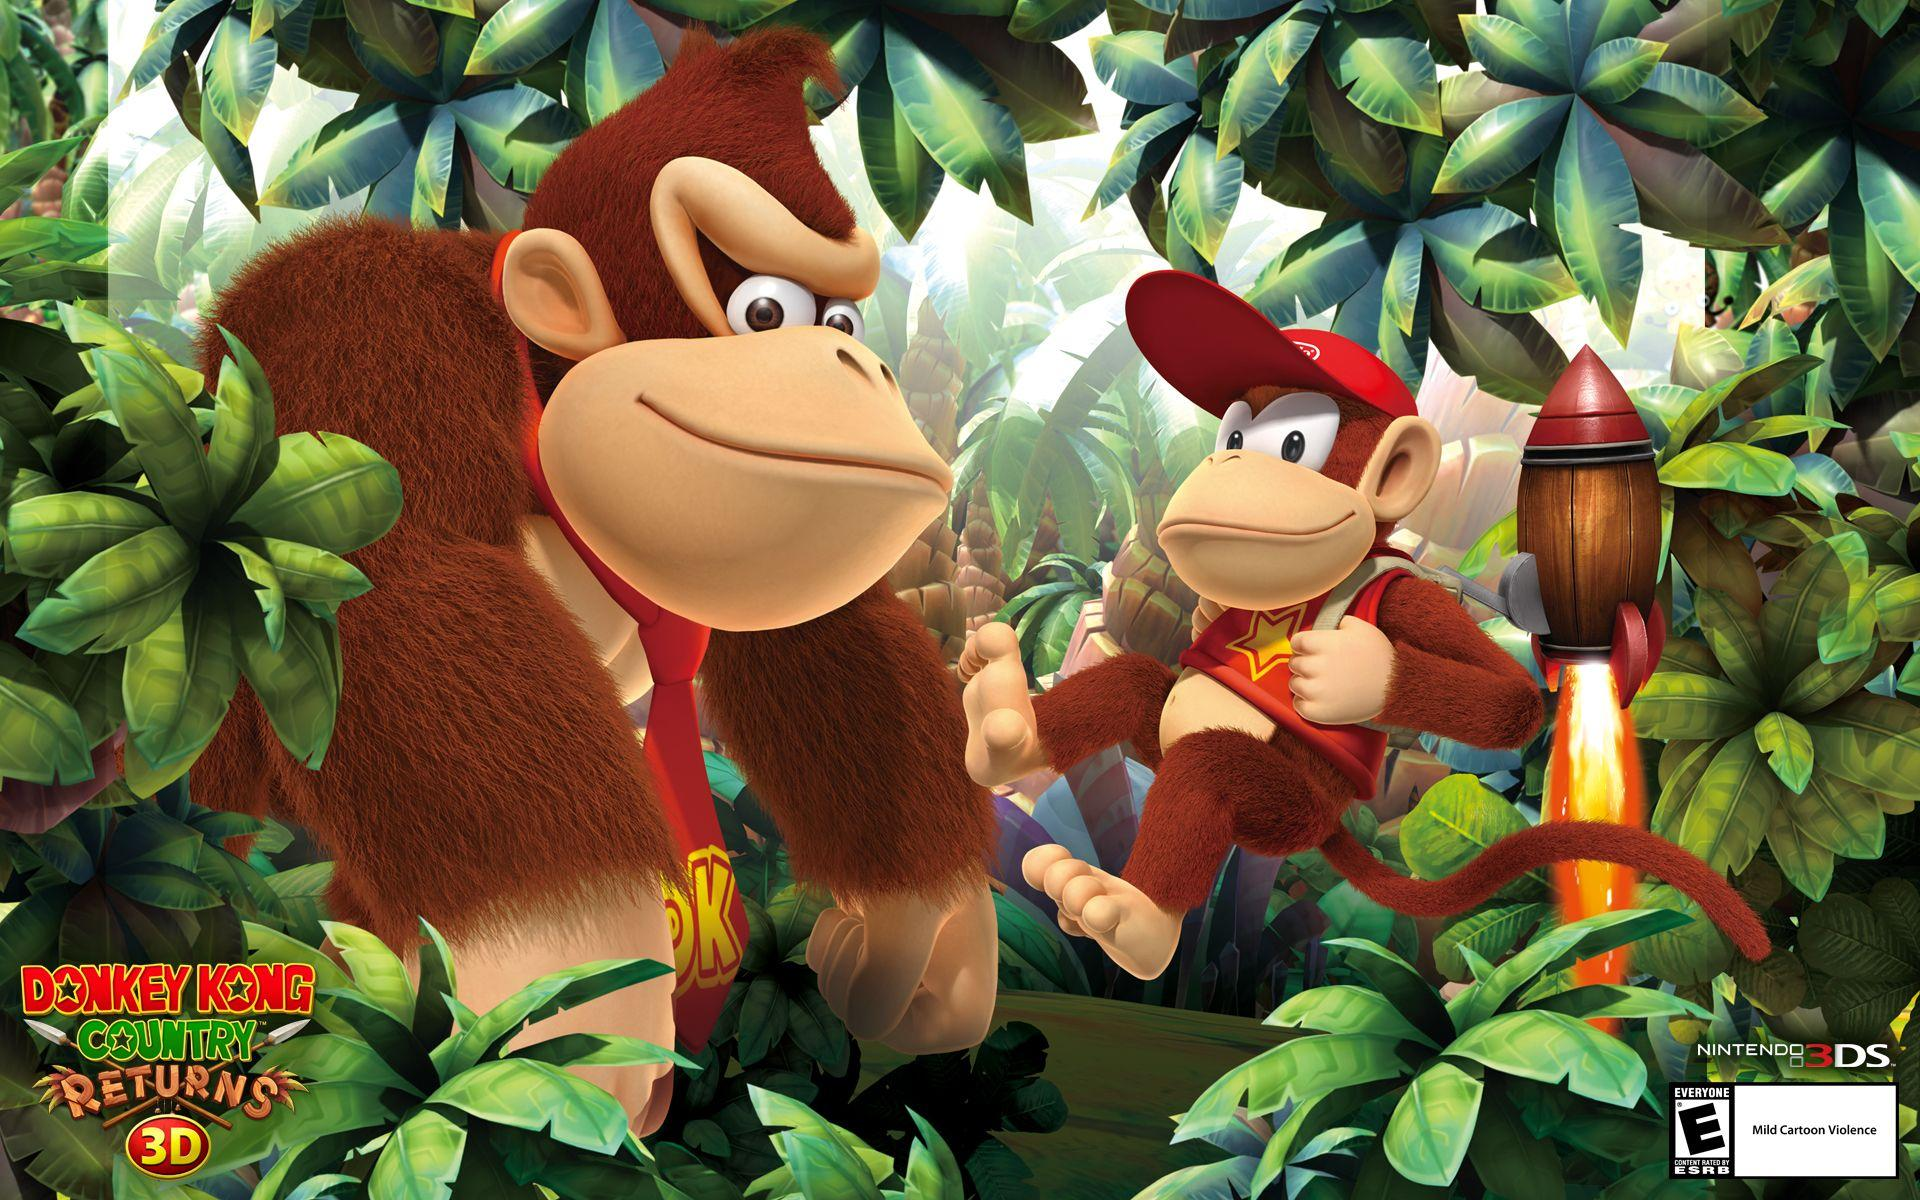 Donkey Kong Country 2 Hd Wallpapers Wallpaper Cave